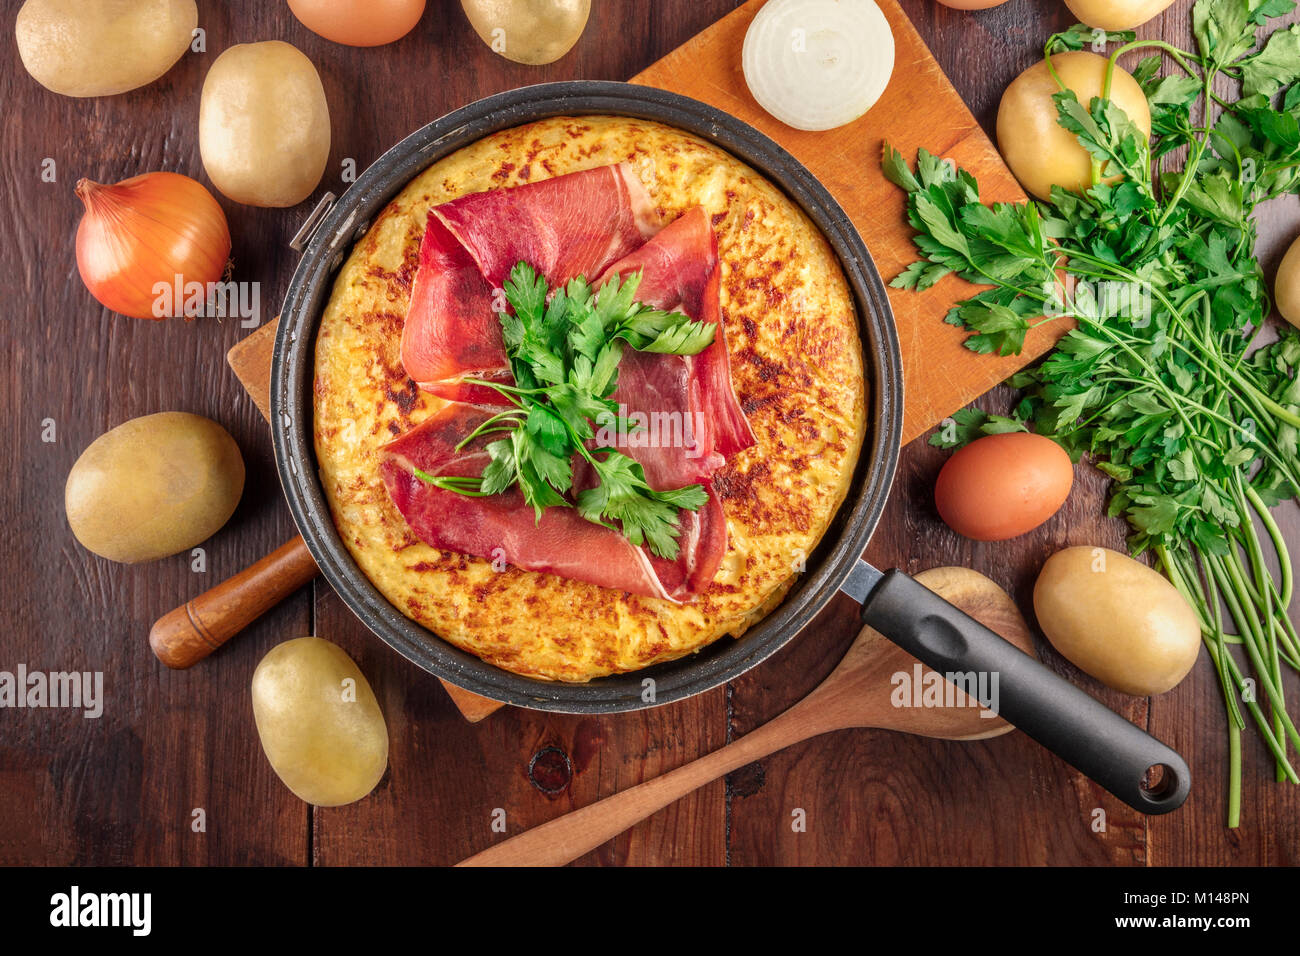 Spanish tortilla, shot from above with ingredients and copyspace - Stock Image